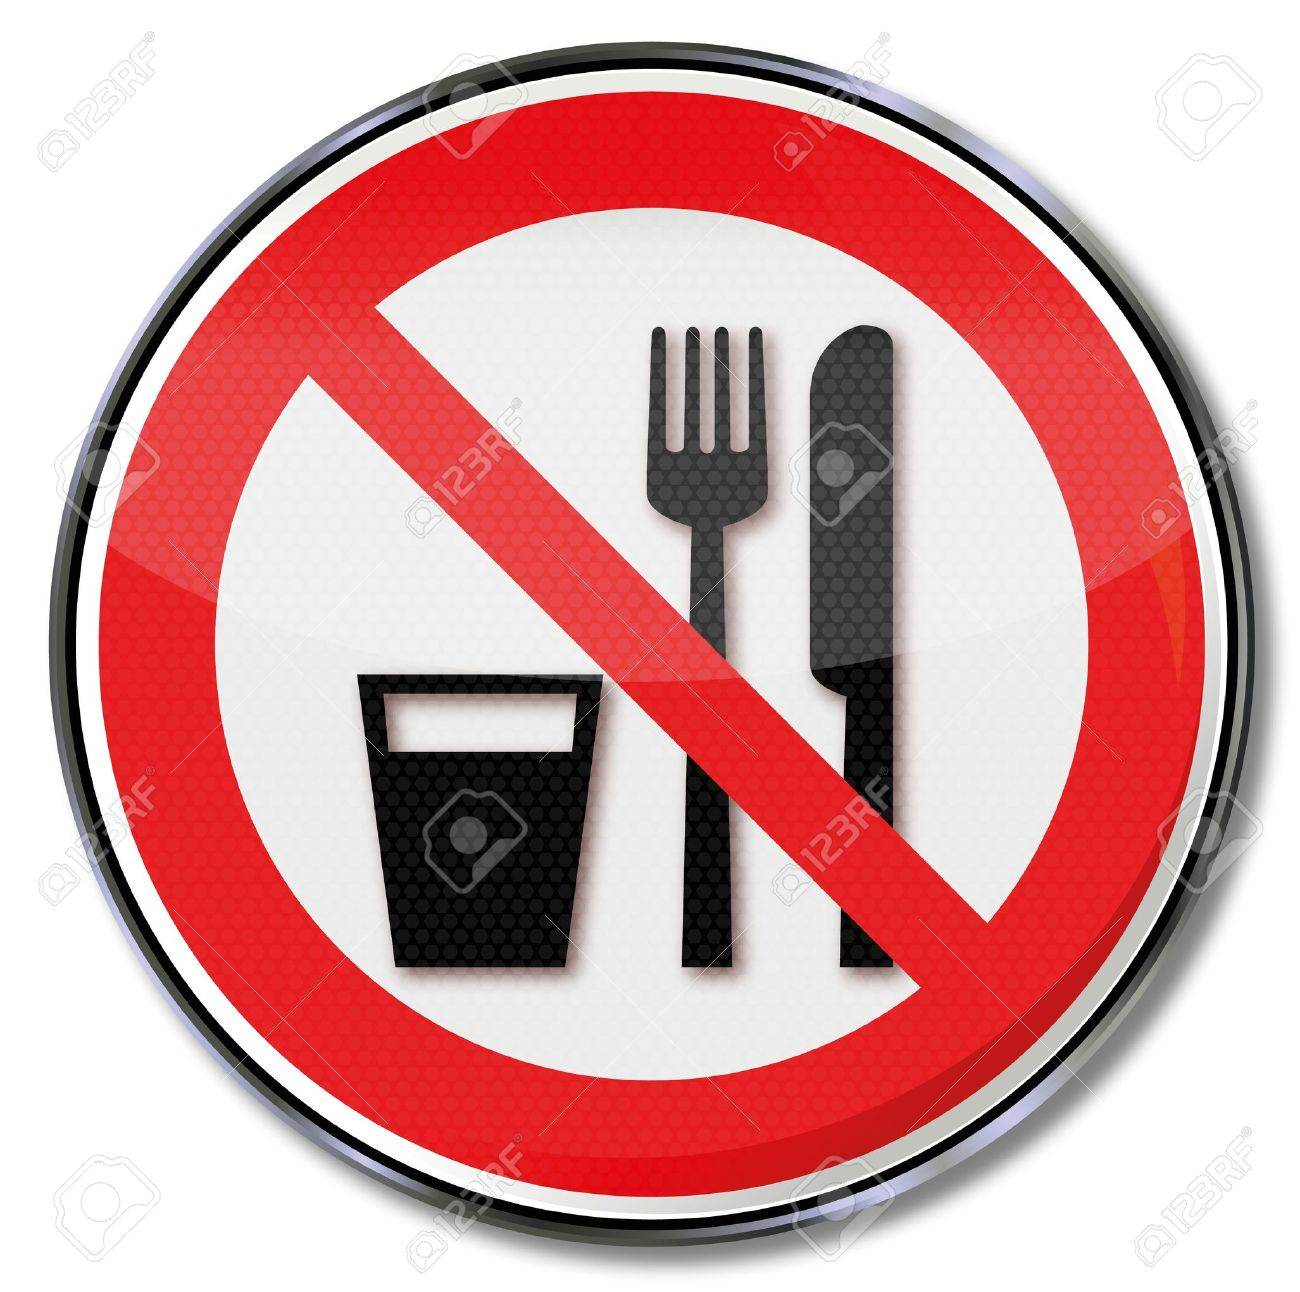 Что такое eating prohibitted 8 фотография